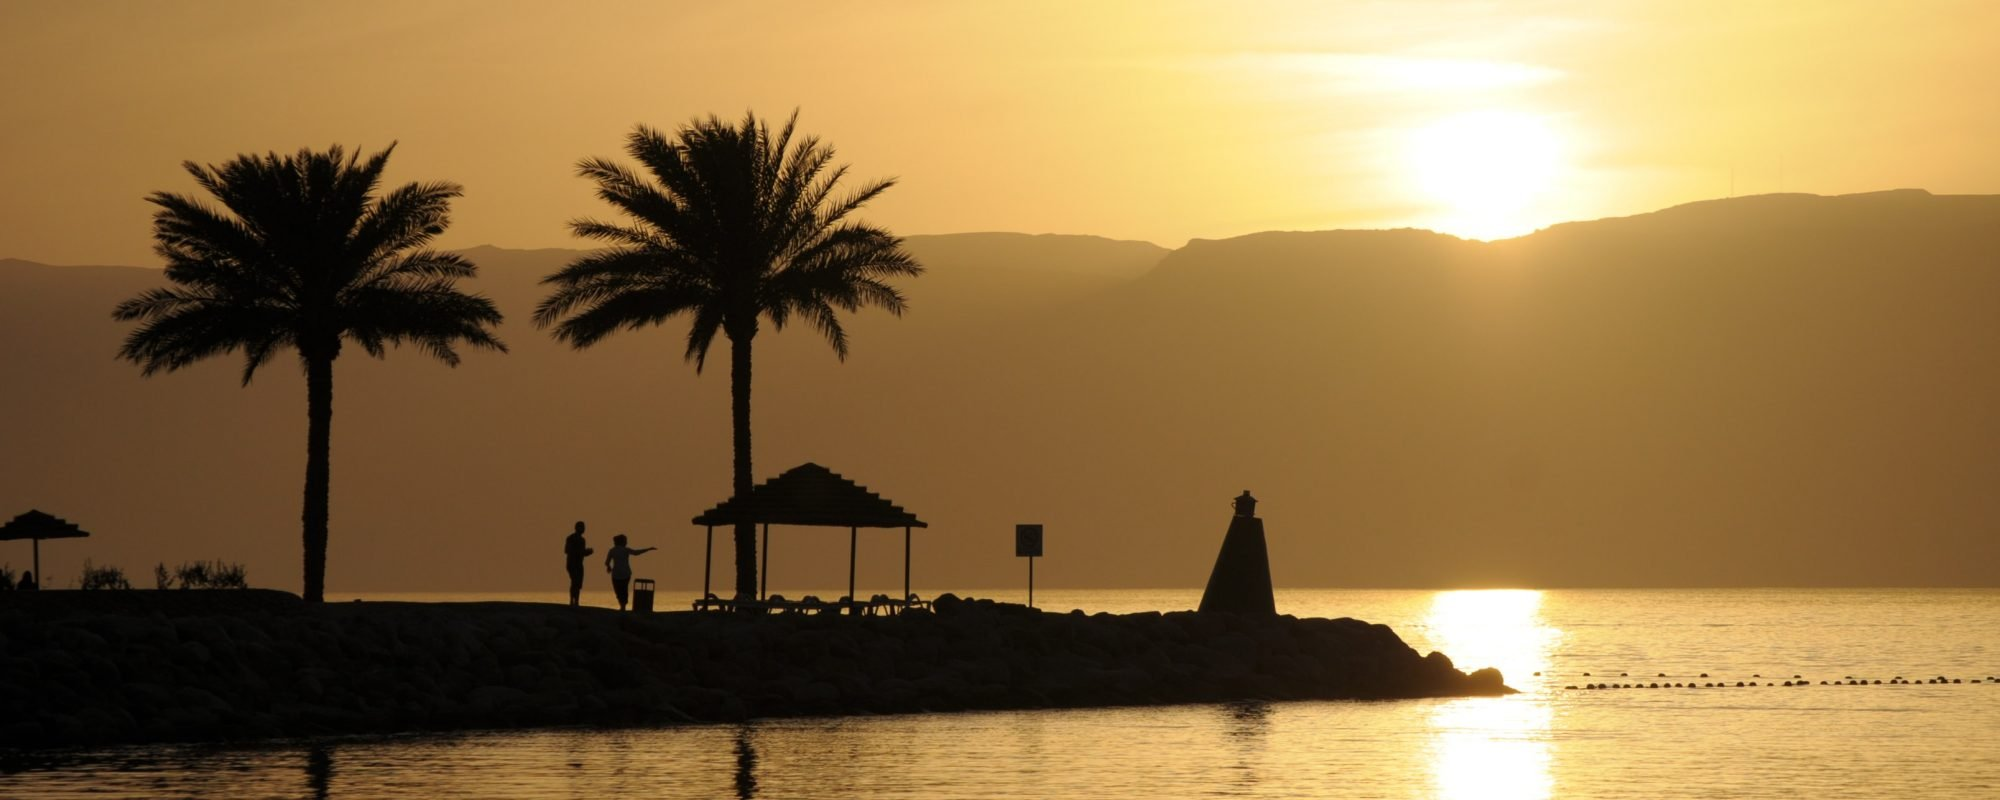 aqaba city guide